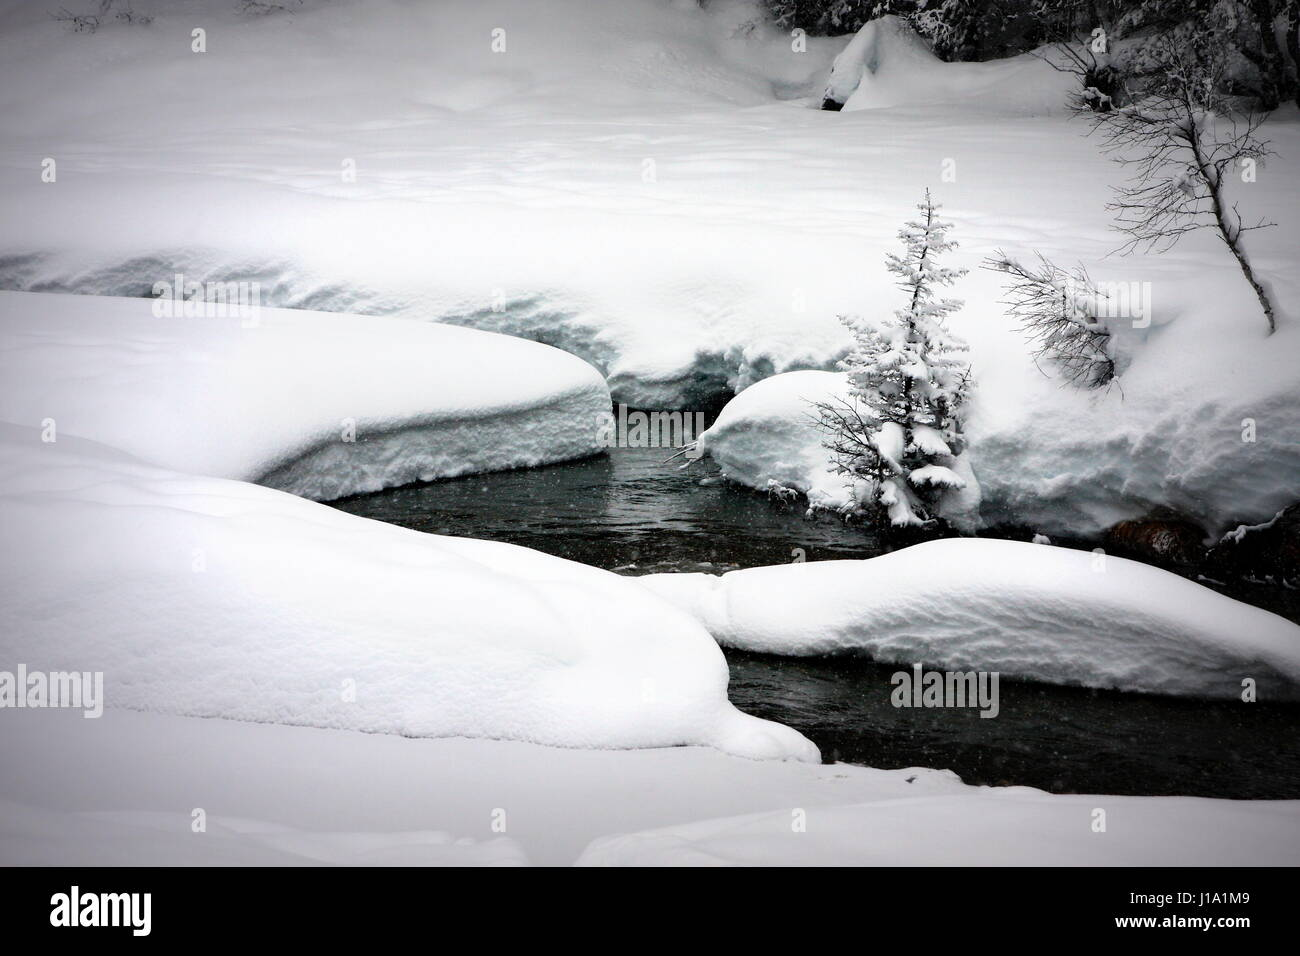 A trickle goes through its course despite heavy snow and frost in National Park Vanoise, France - Stock Image